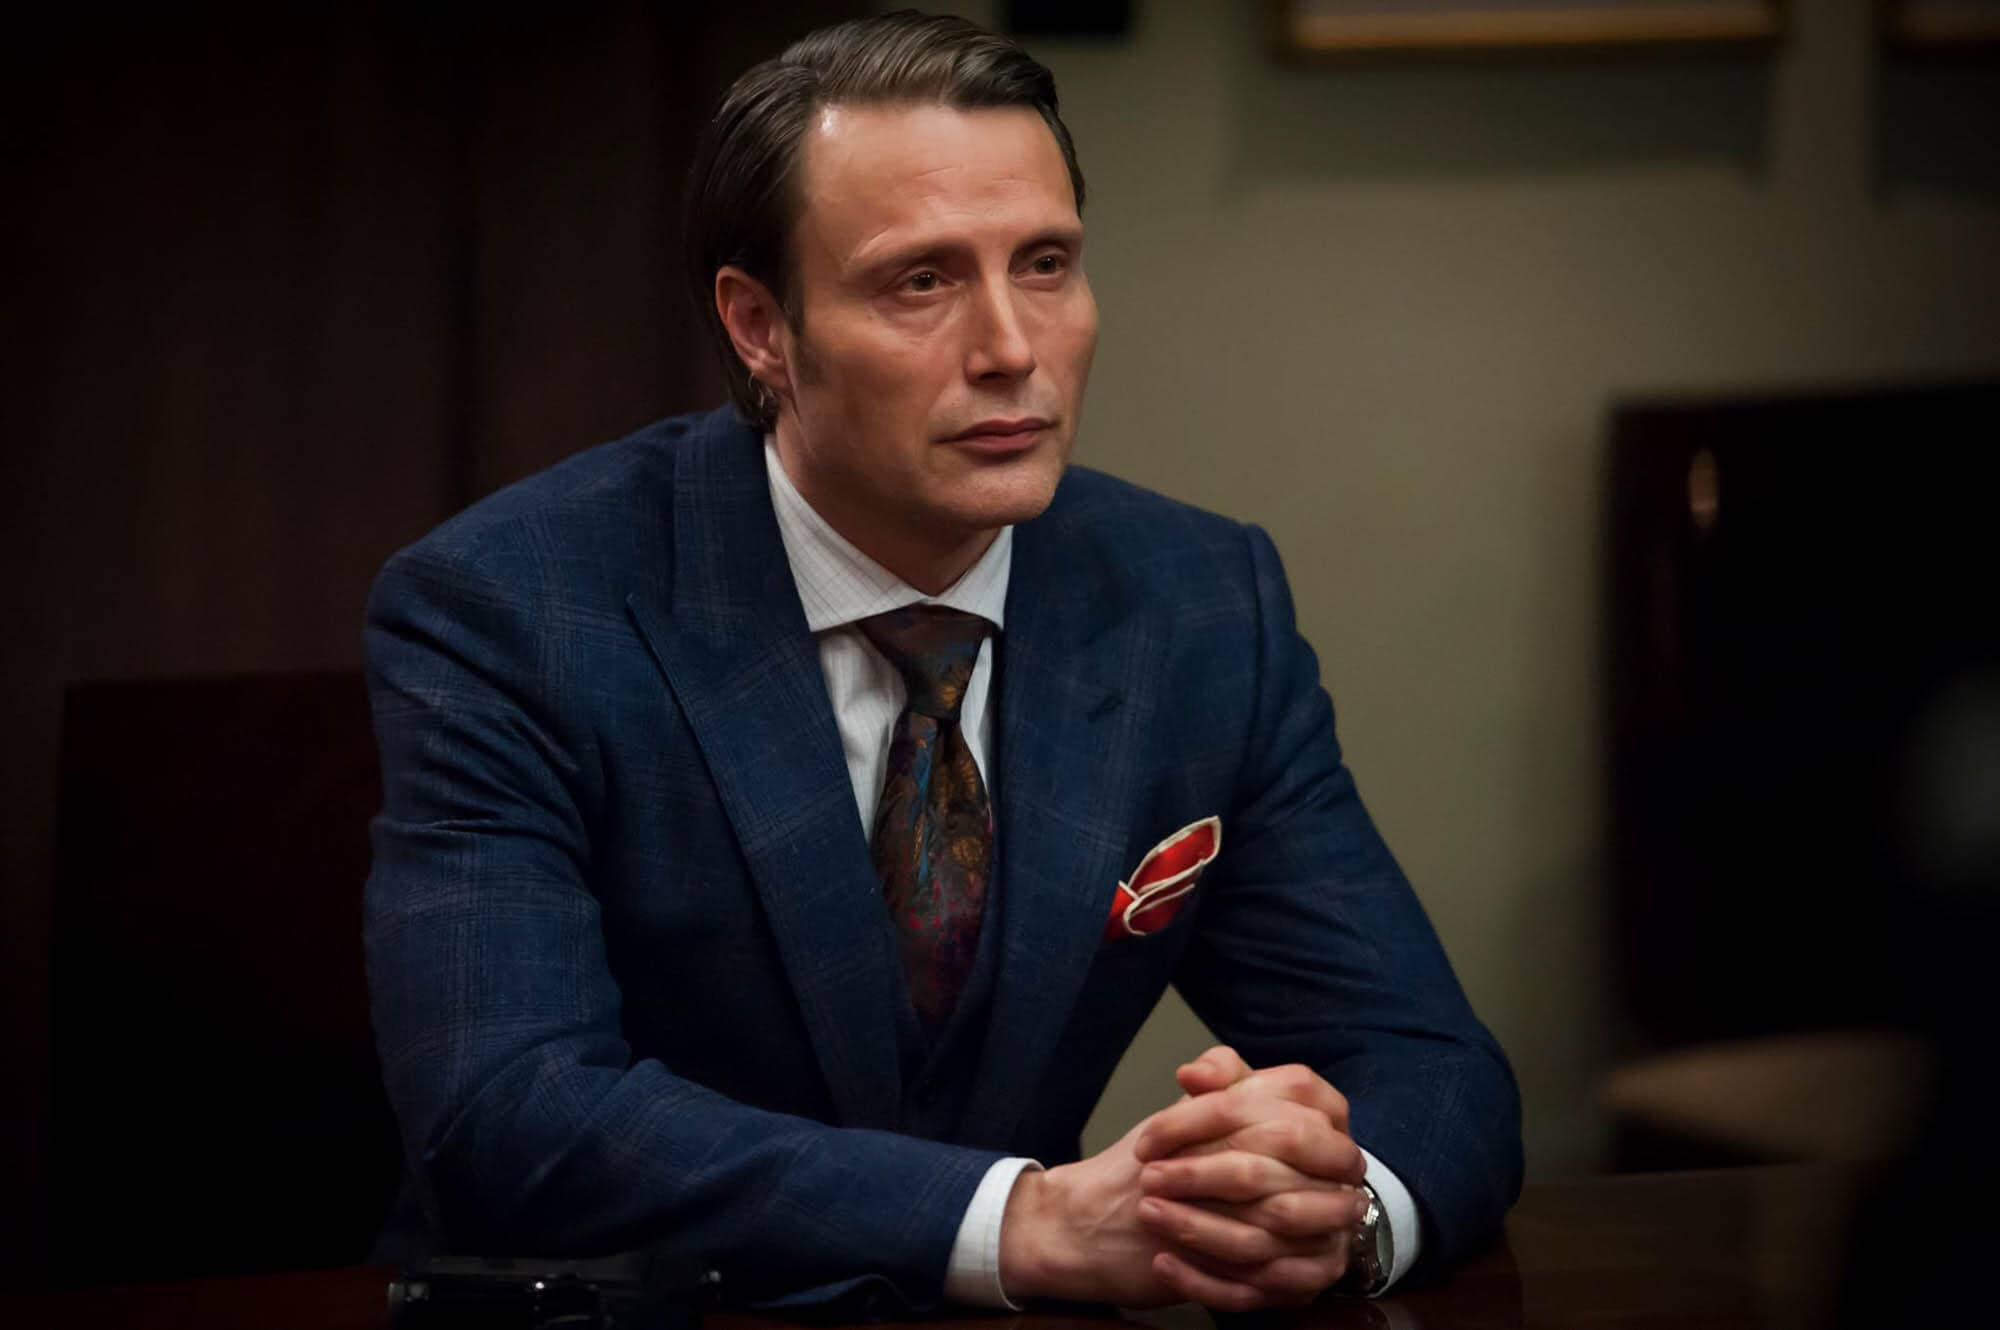 Color Combinations With Grey The Suits Of Hannibal Amp How To Dress Like Lecter